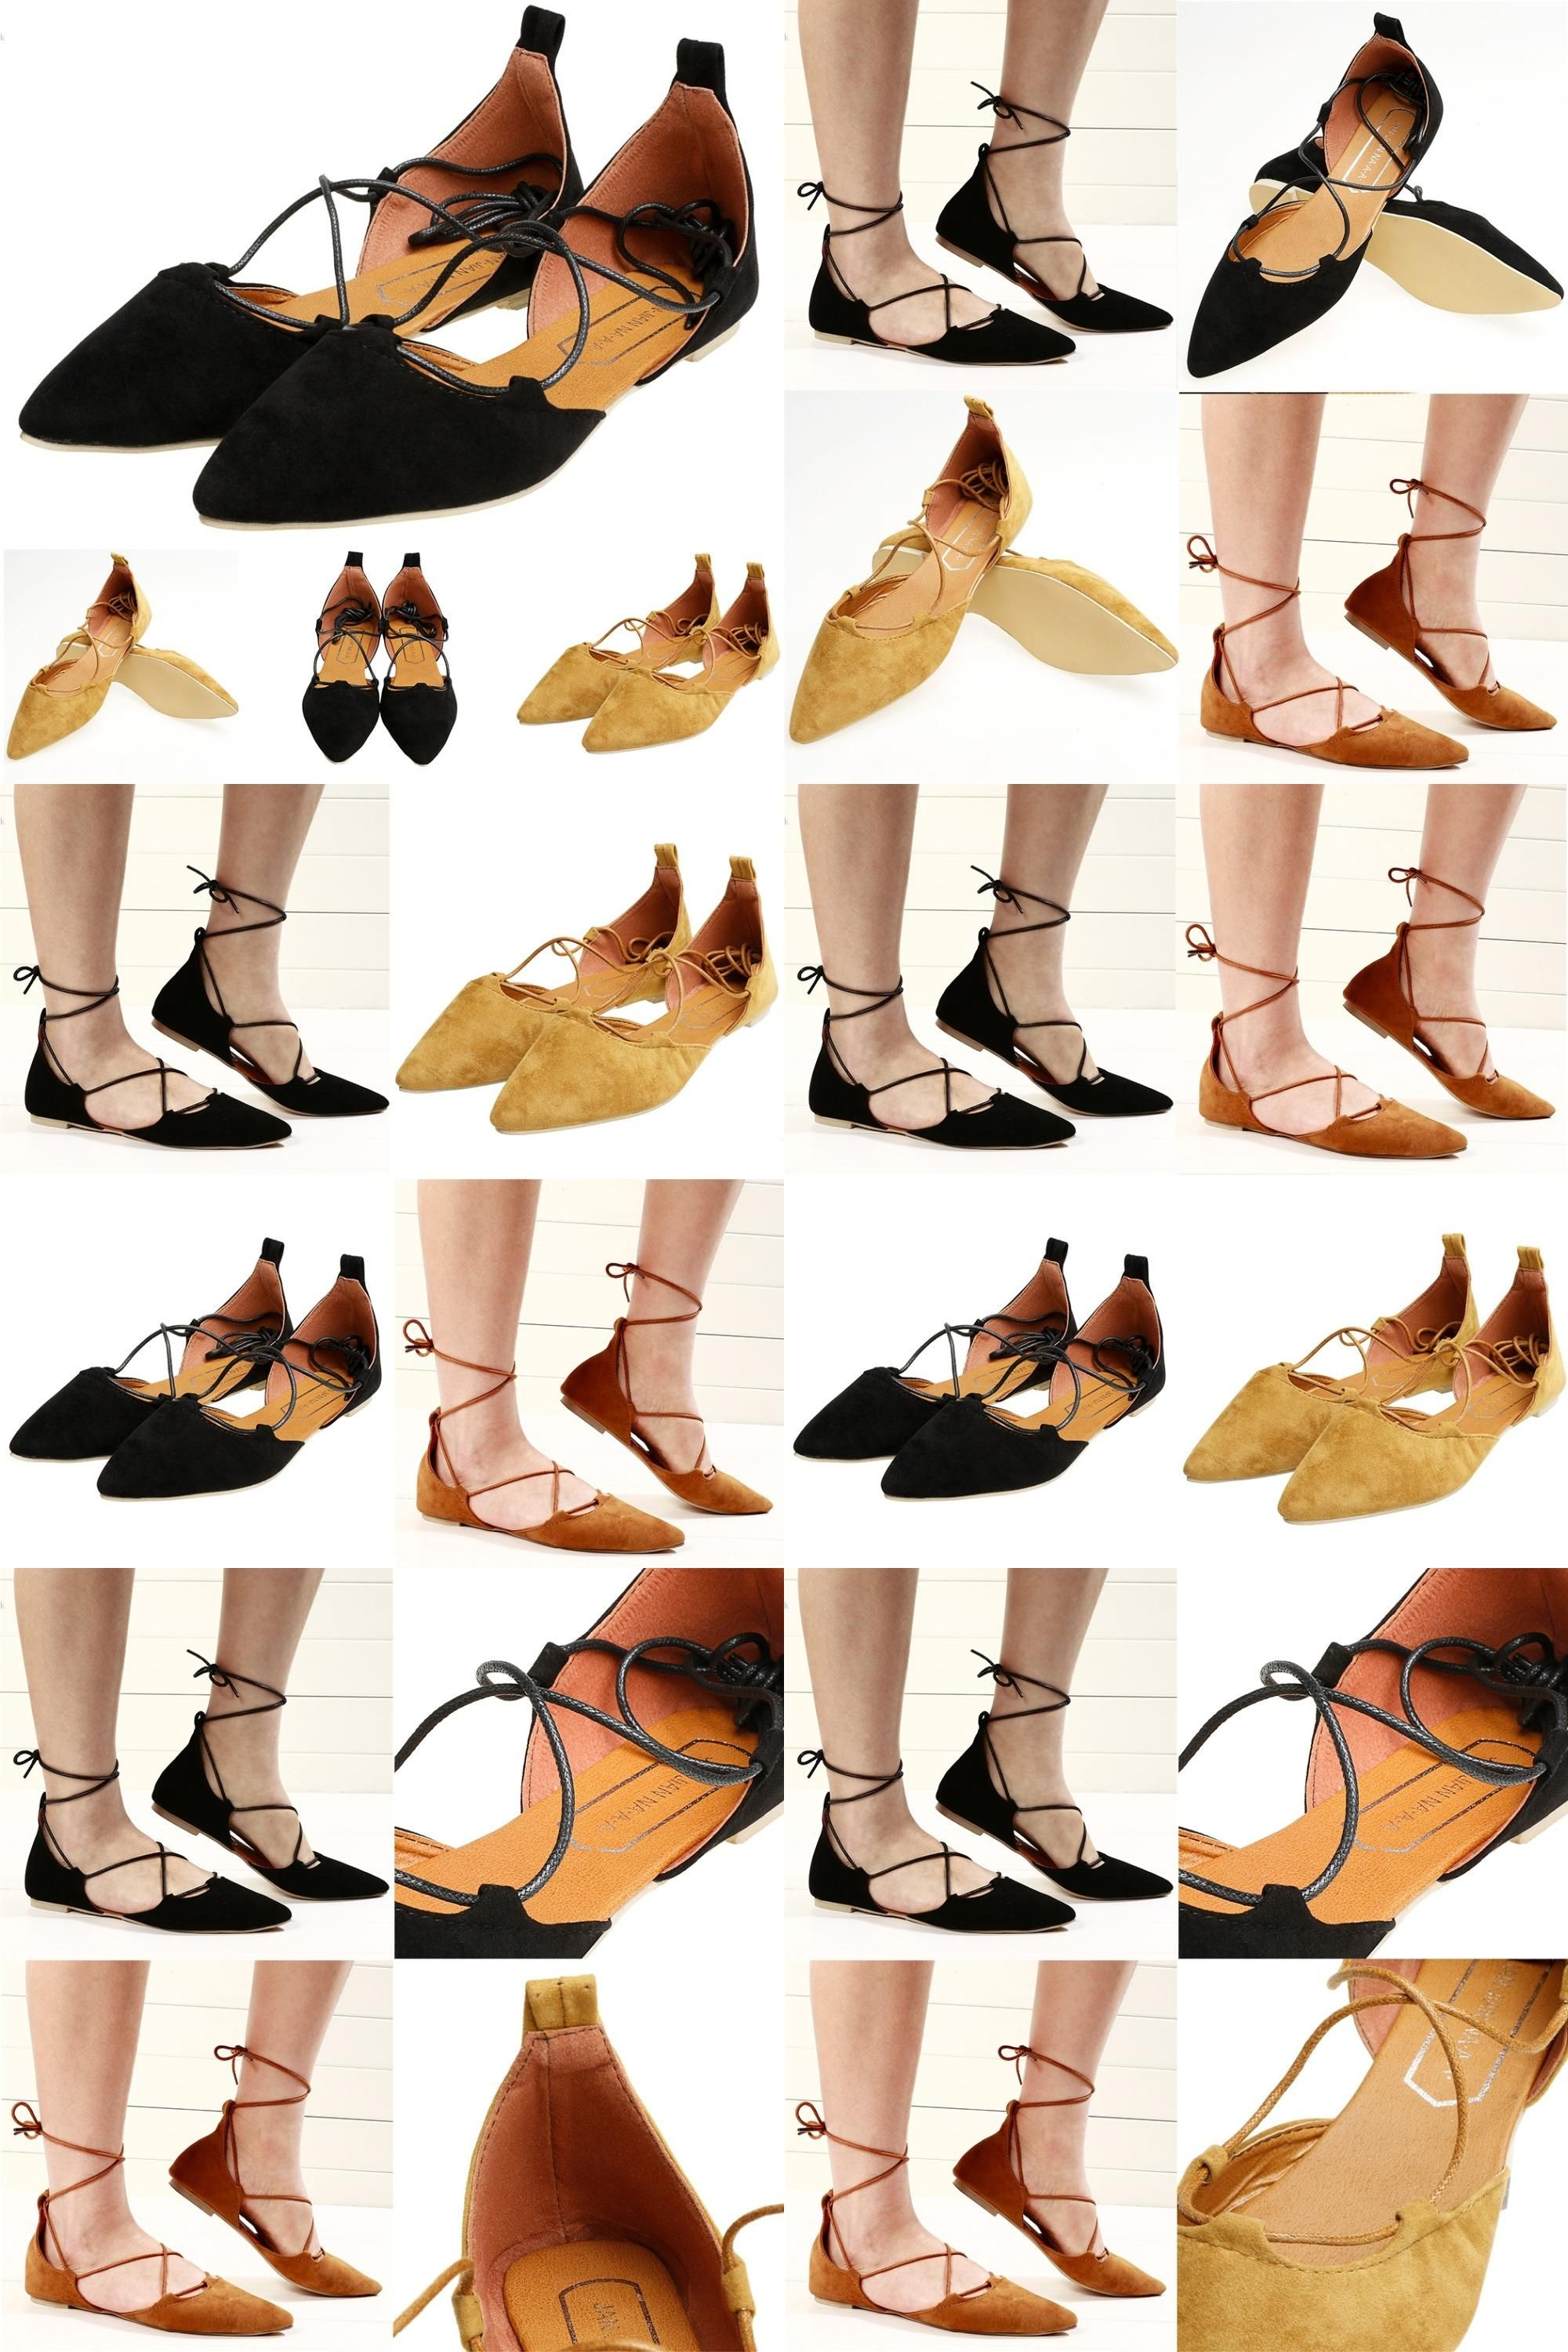 a542c4a1c558  Visit to Buy  2017 Spring Summer Women Black Suede Pointed Toe Cross  Strappy Lace Up Ballerina Ballet Flat Shoes